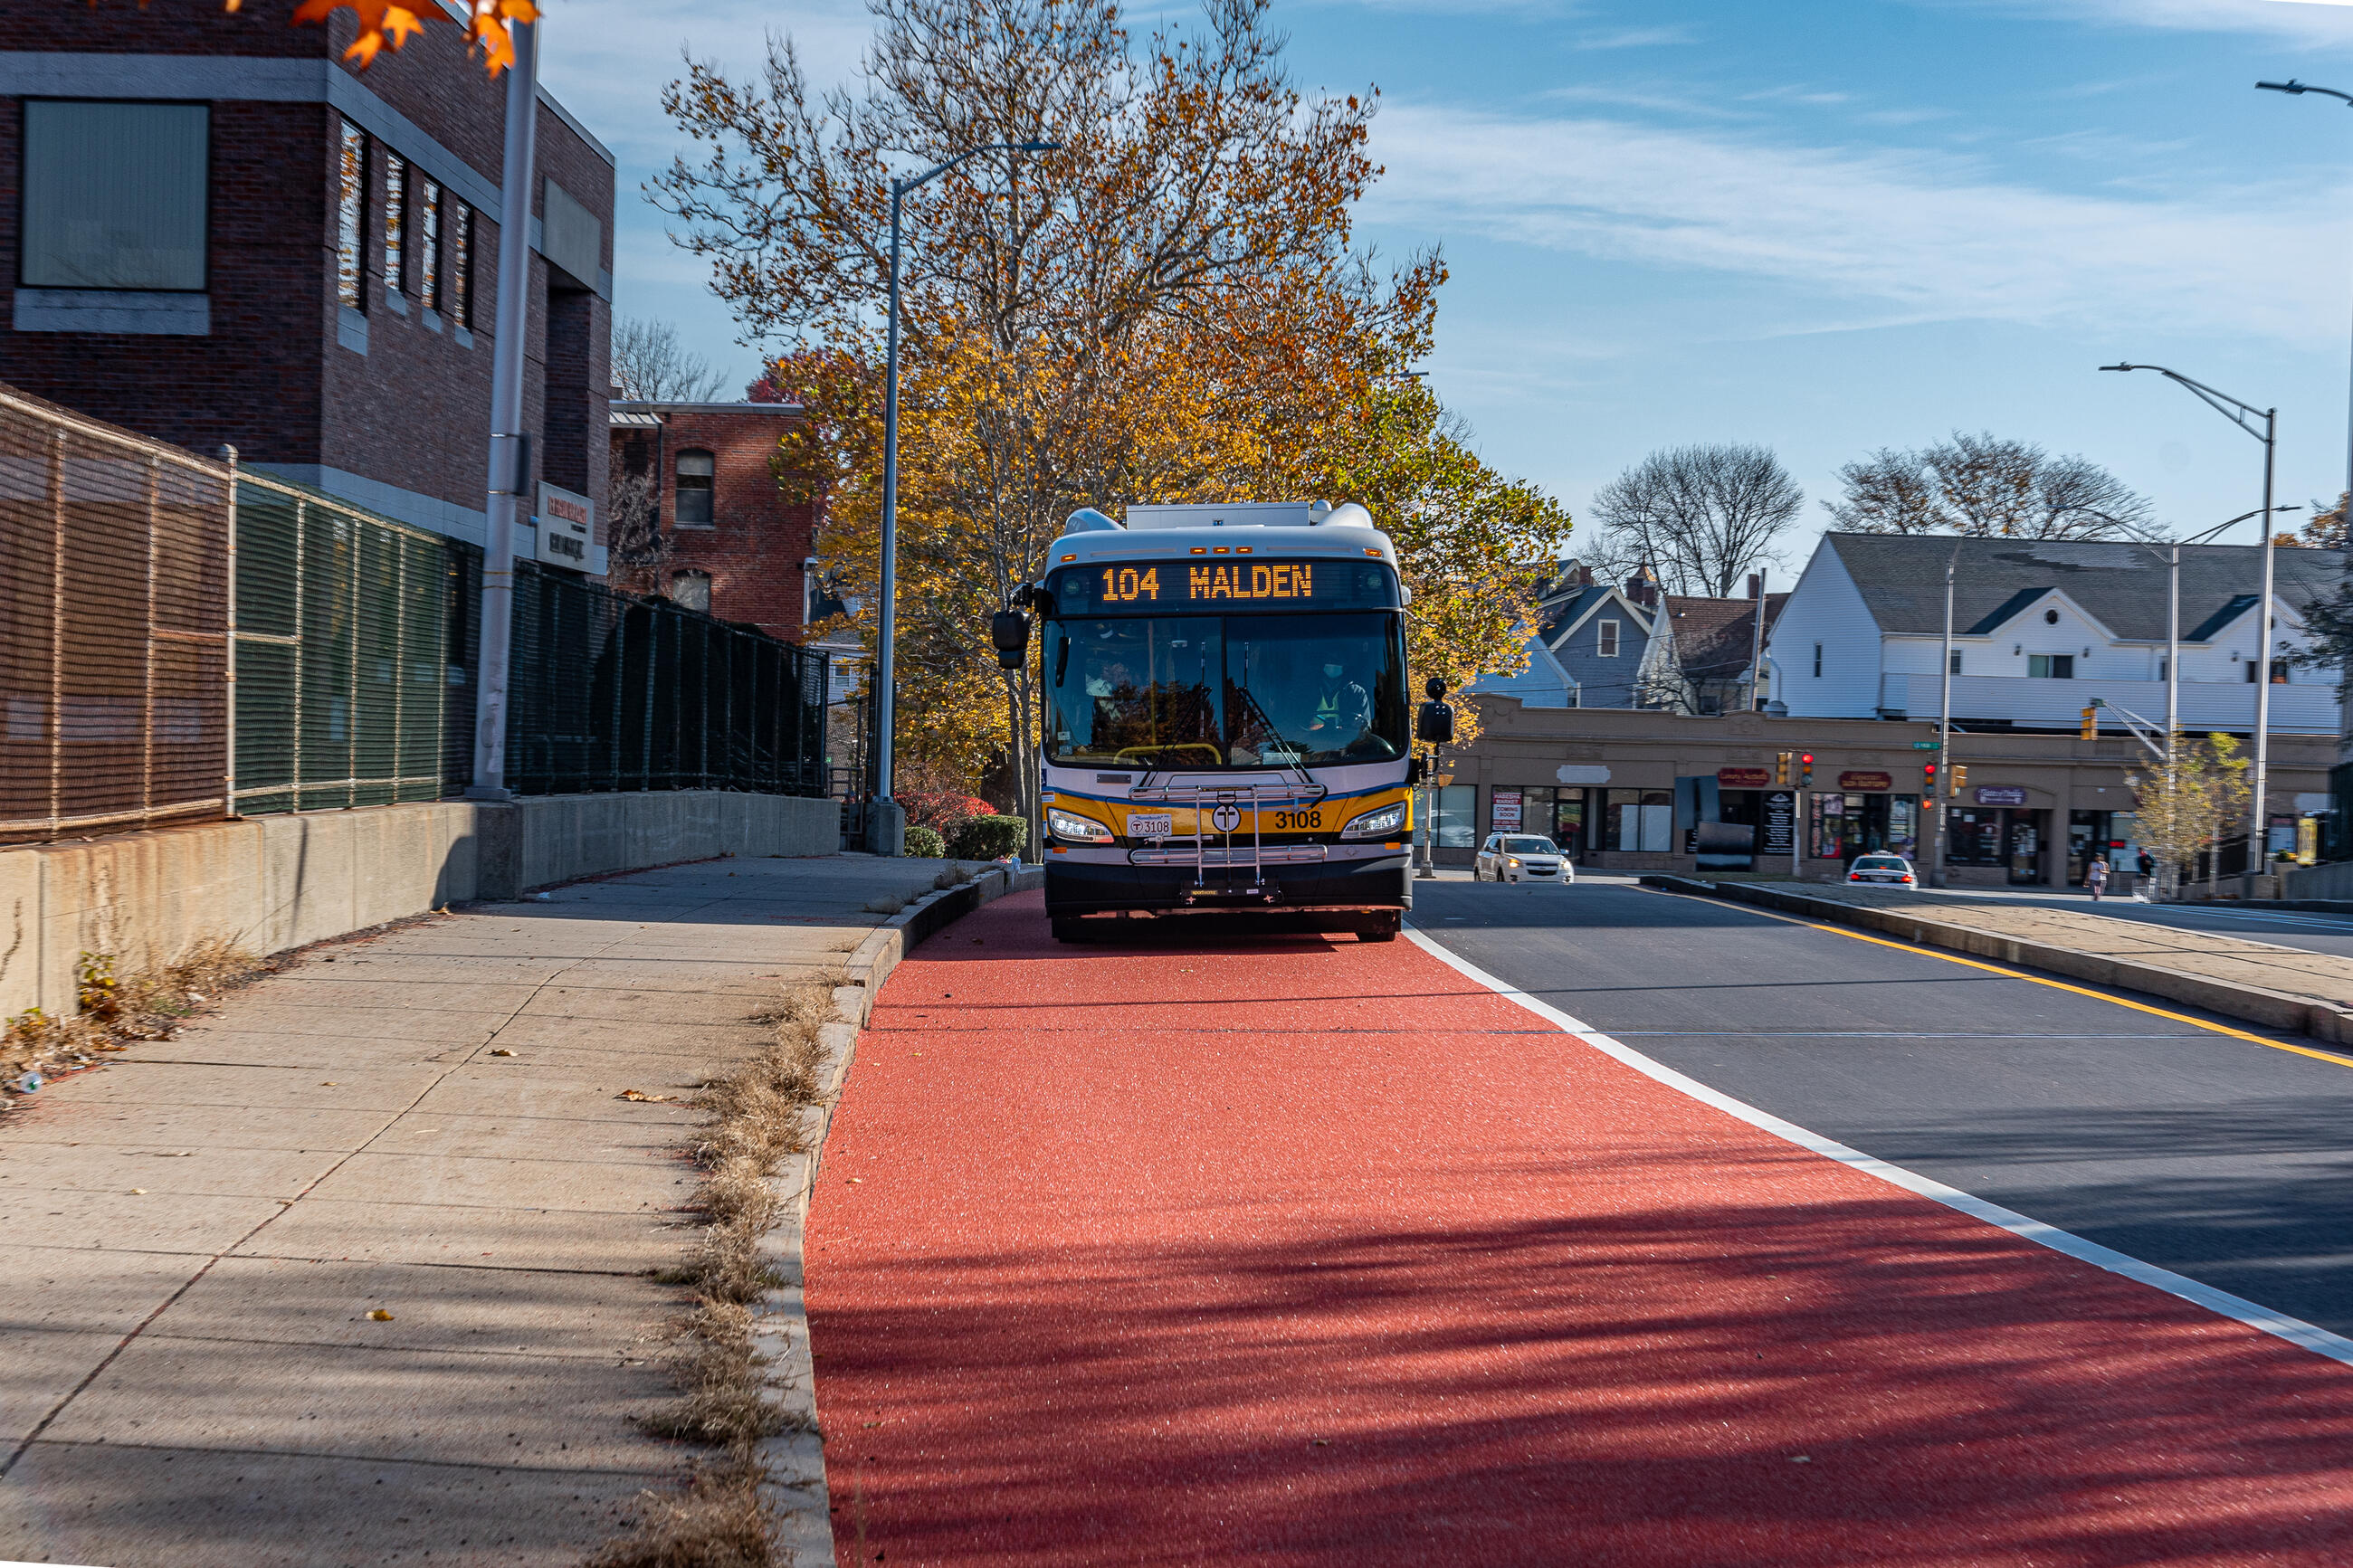 Route 104 bus using the new Florence Street bus lane approaching Malden Center Station.